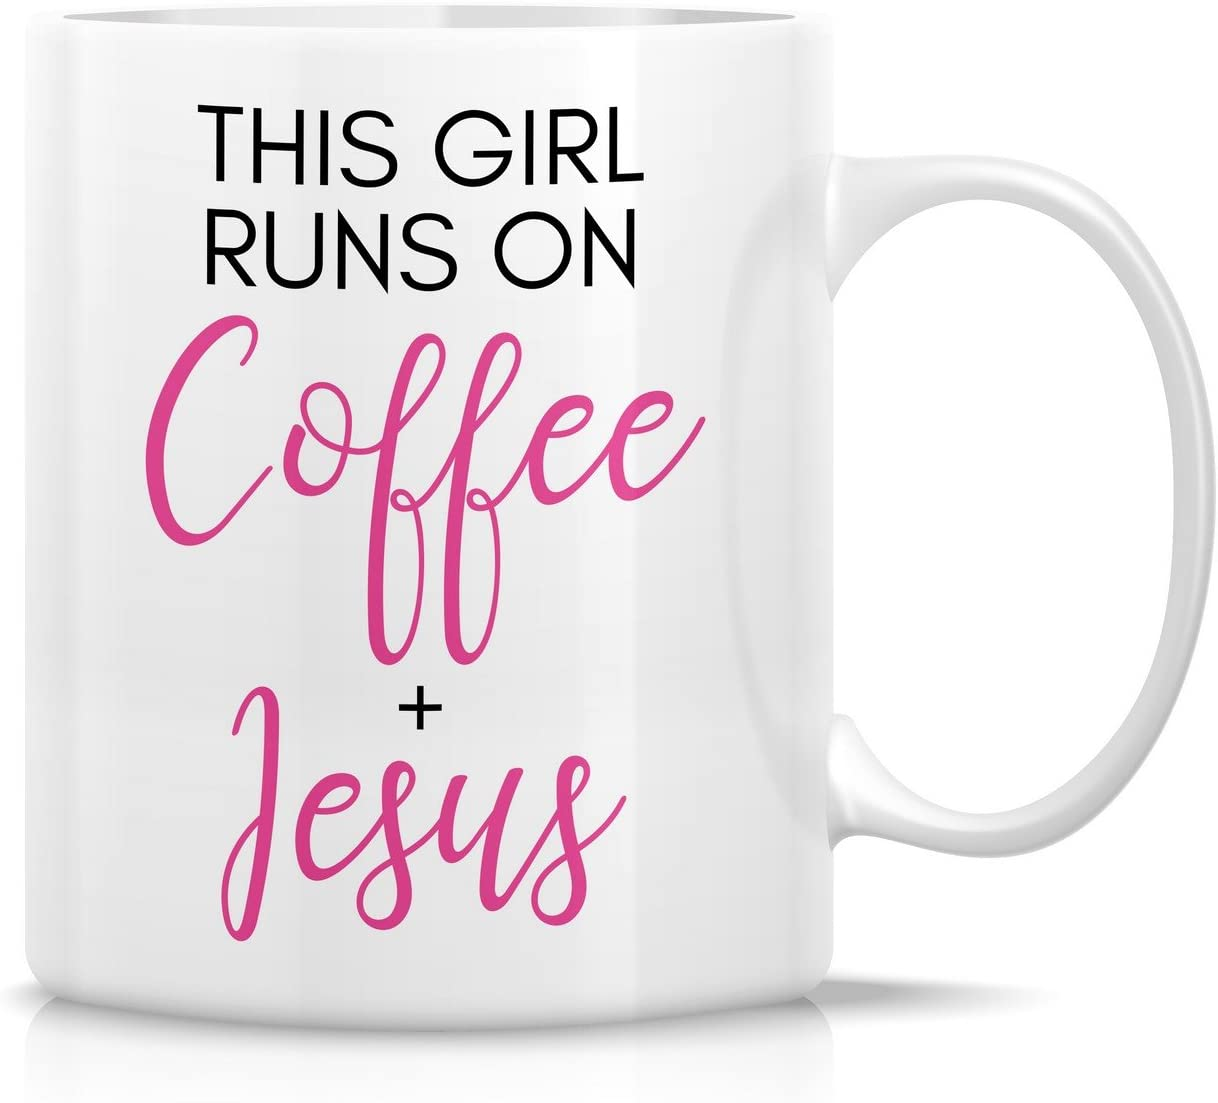 Retreez Funny Mug - This Girl Runs on Coffee + Jesus 11 Oz Ceramic Coffee Mugs - Funny, Sarcasm, Sarcastic, Motivational, Inspirational birthday gifts for wife, girlfriend, bff, friends, coworkers